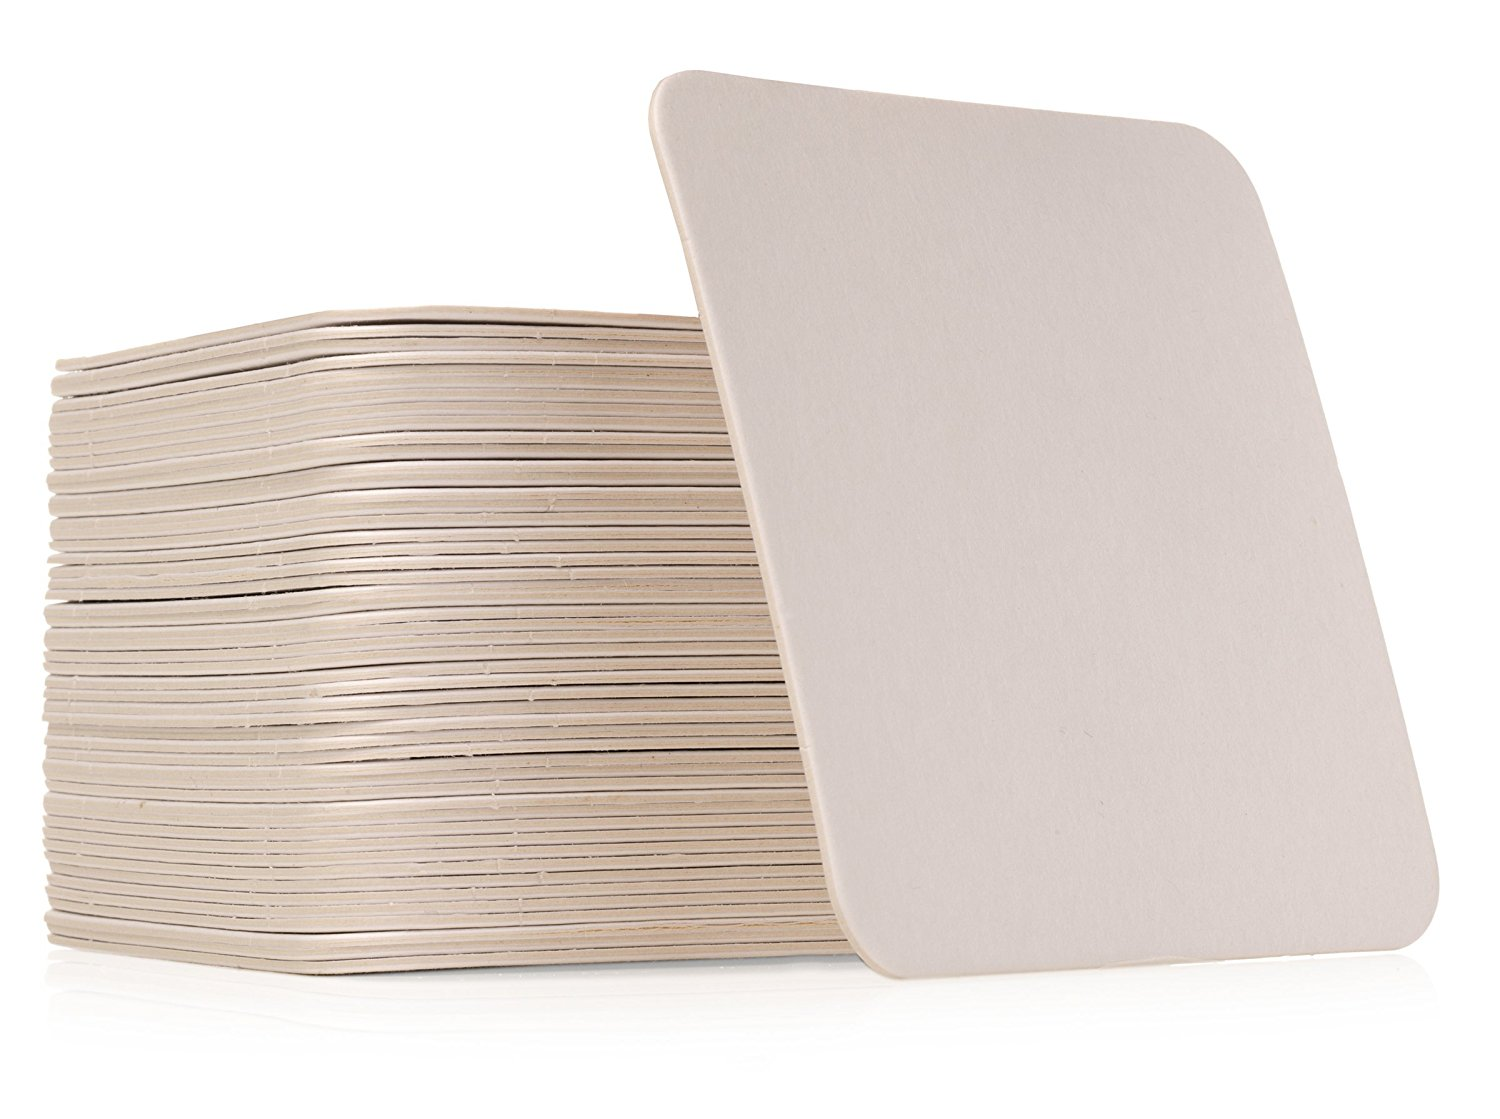 Plain White Coasters, Square by